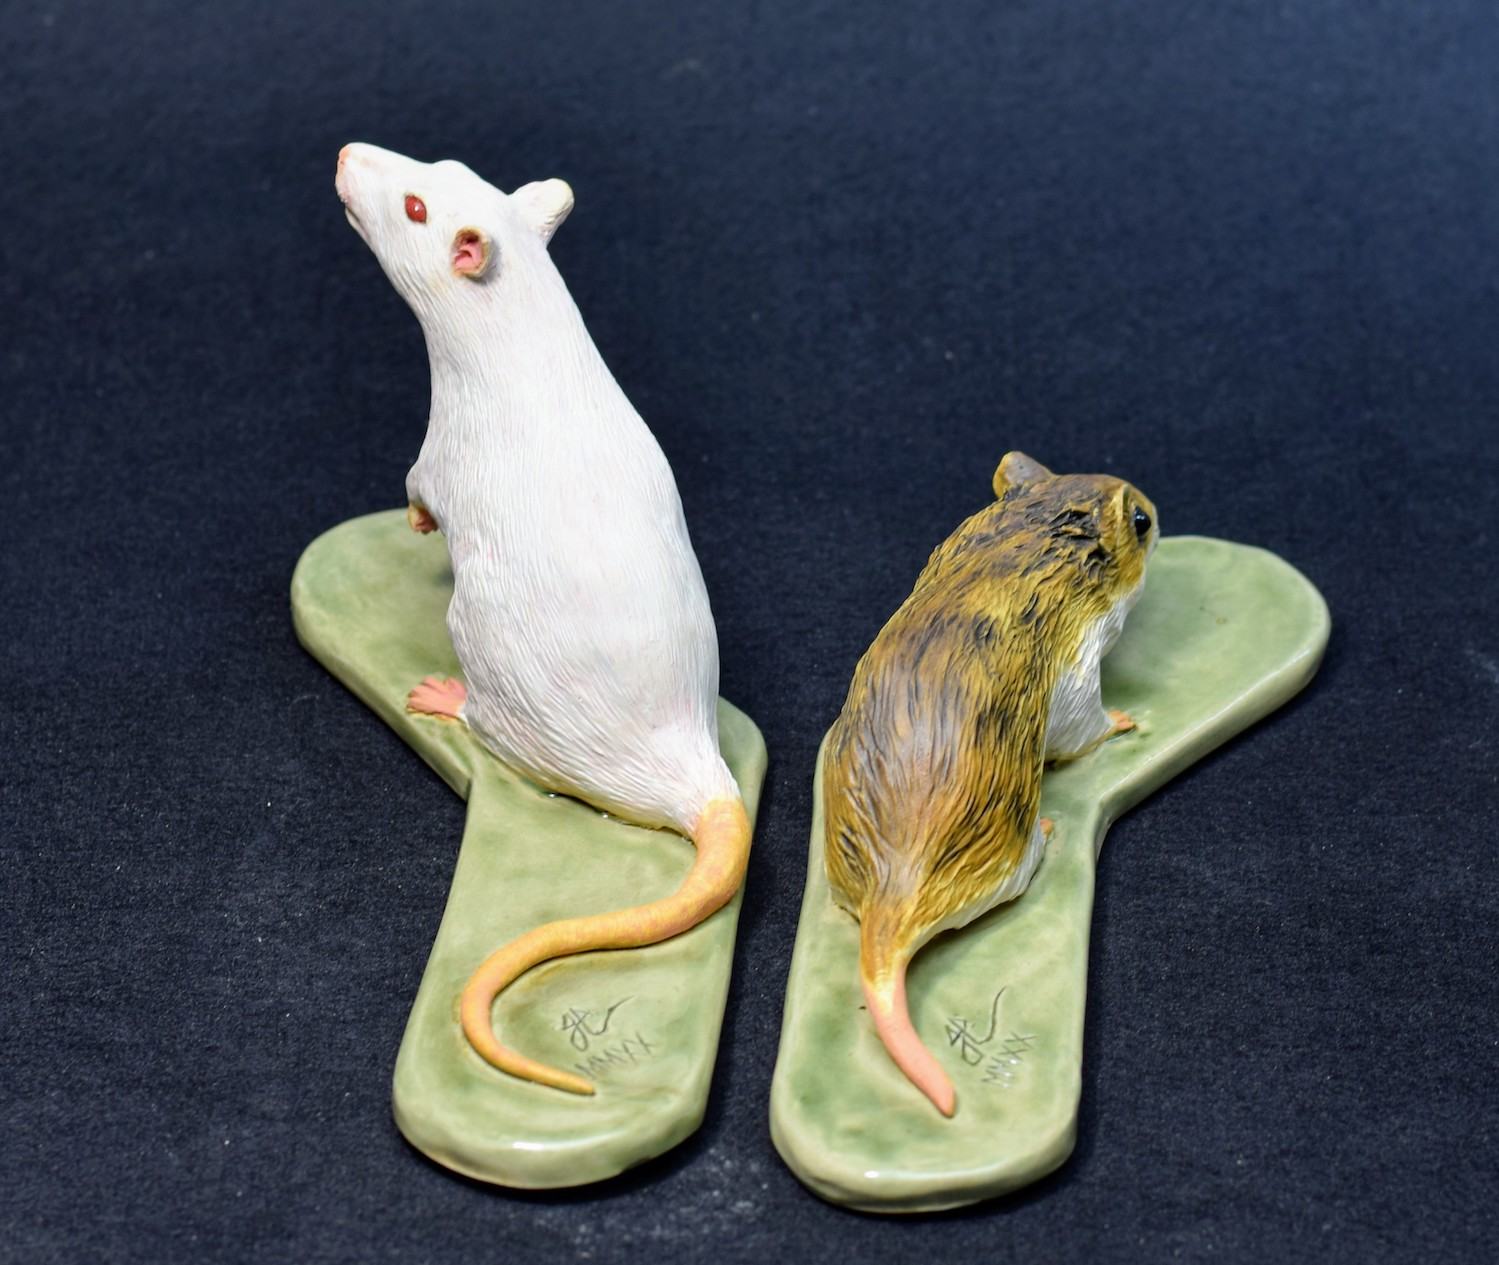 Chinese Hamster and Lab Rat